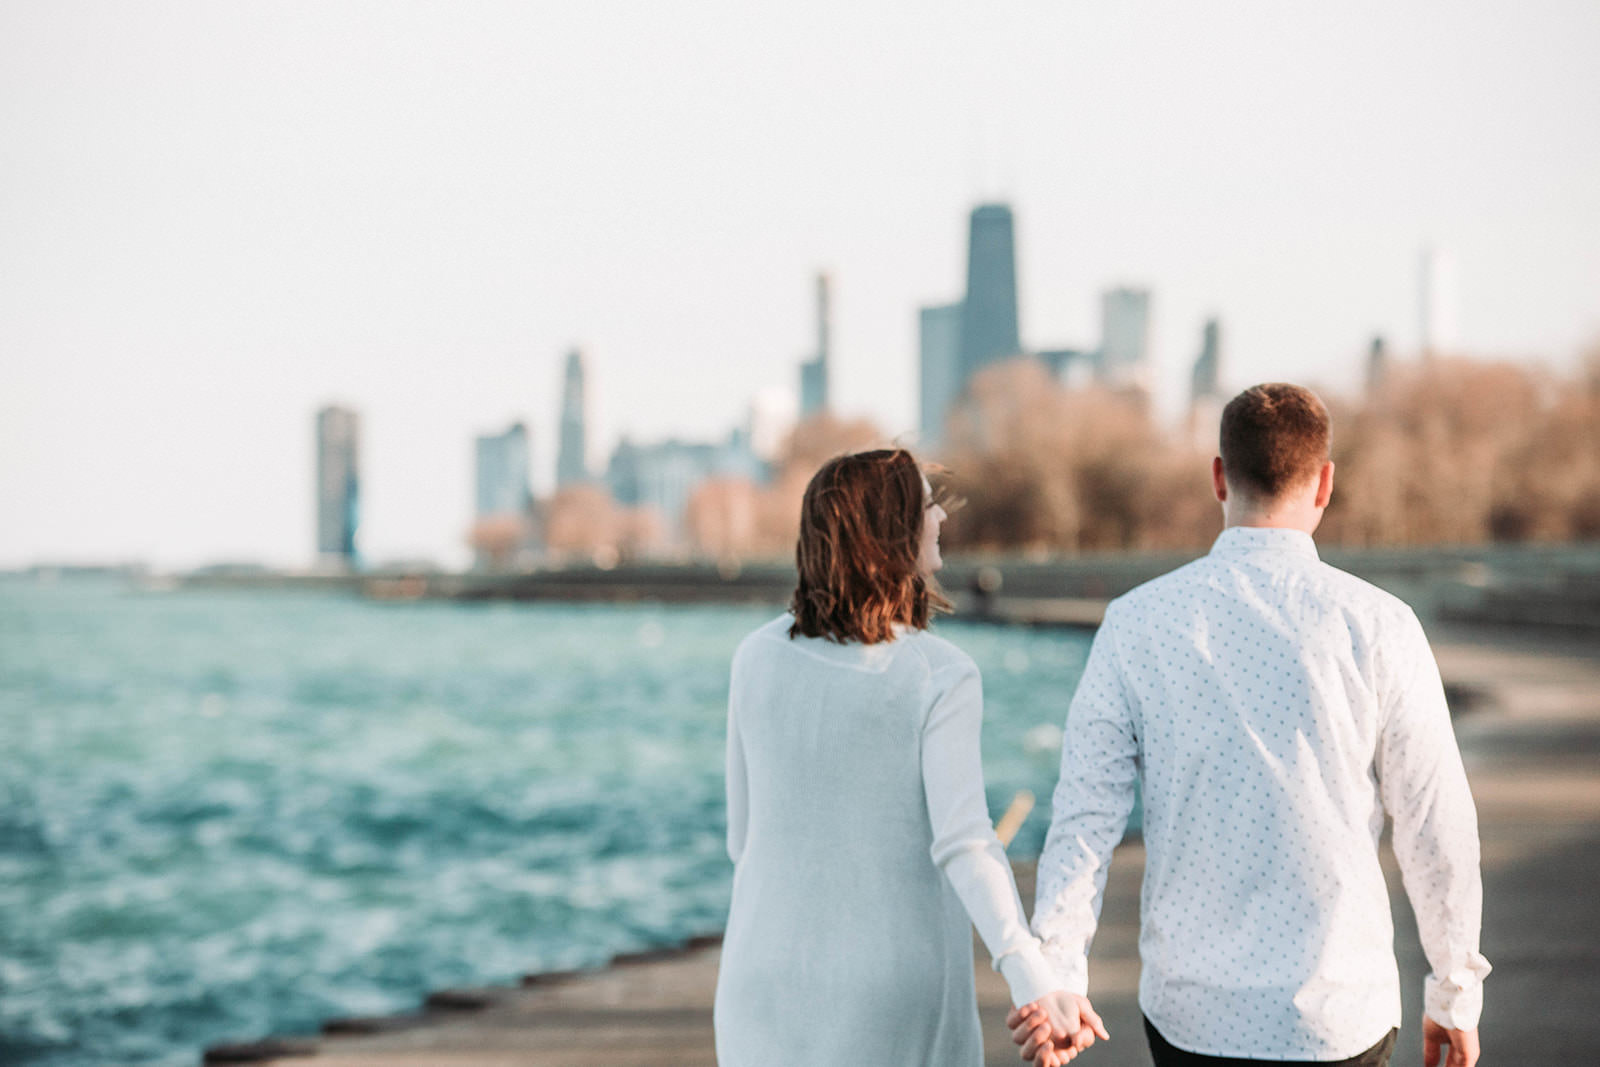 Downtown_chicago_spring_engagement_session-44.jpg